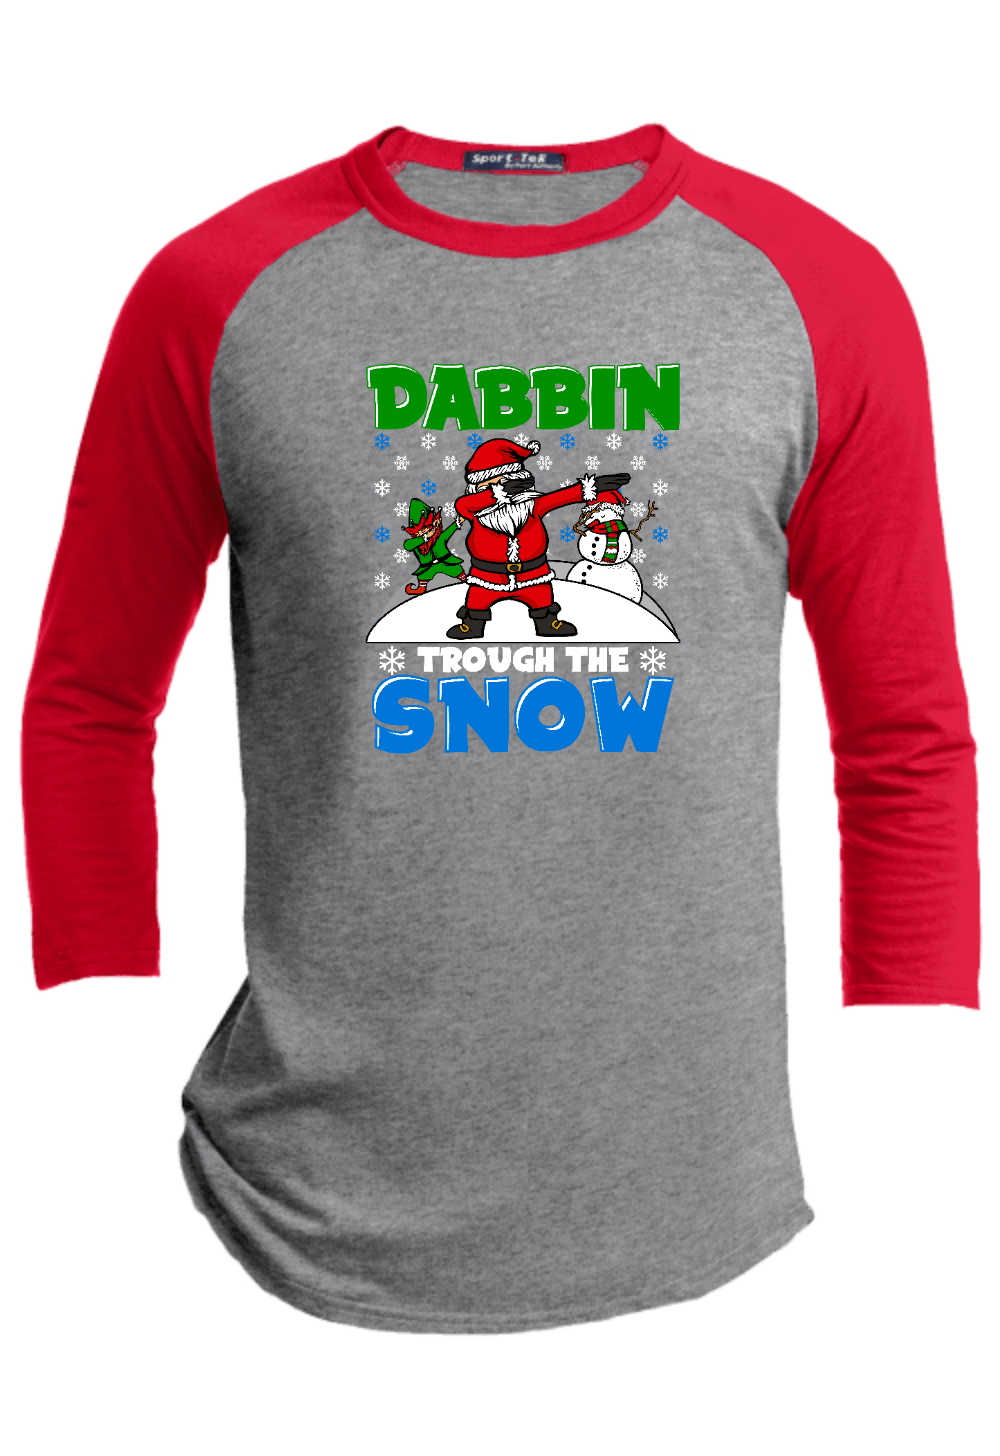 Dabbin Through the Snow Youth Christmas Raglan